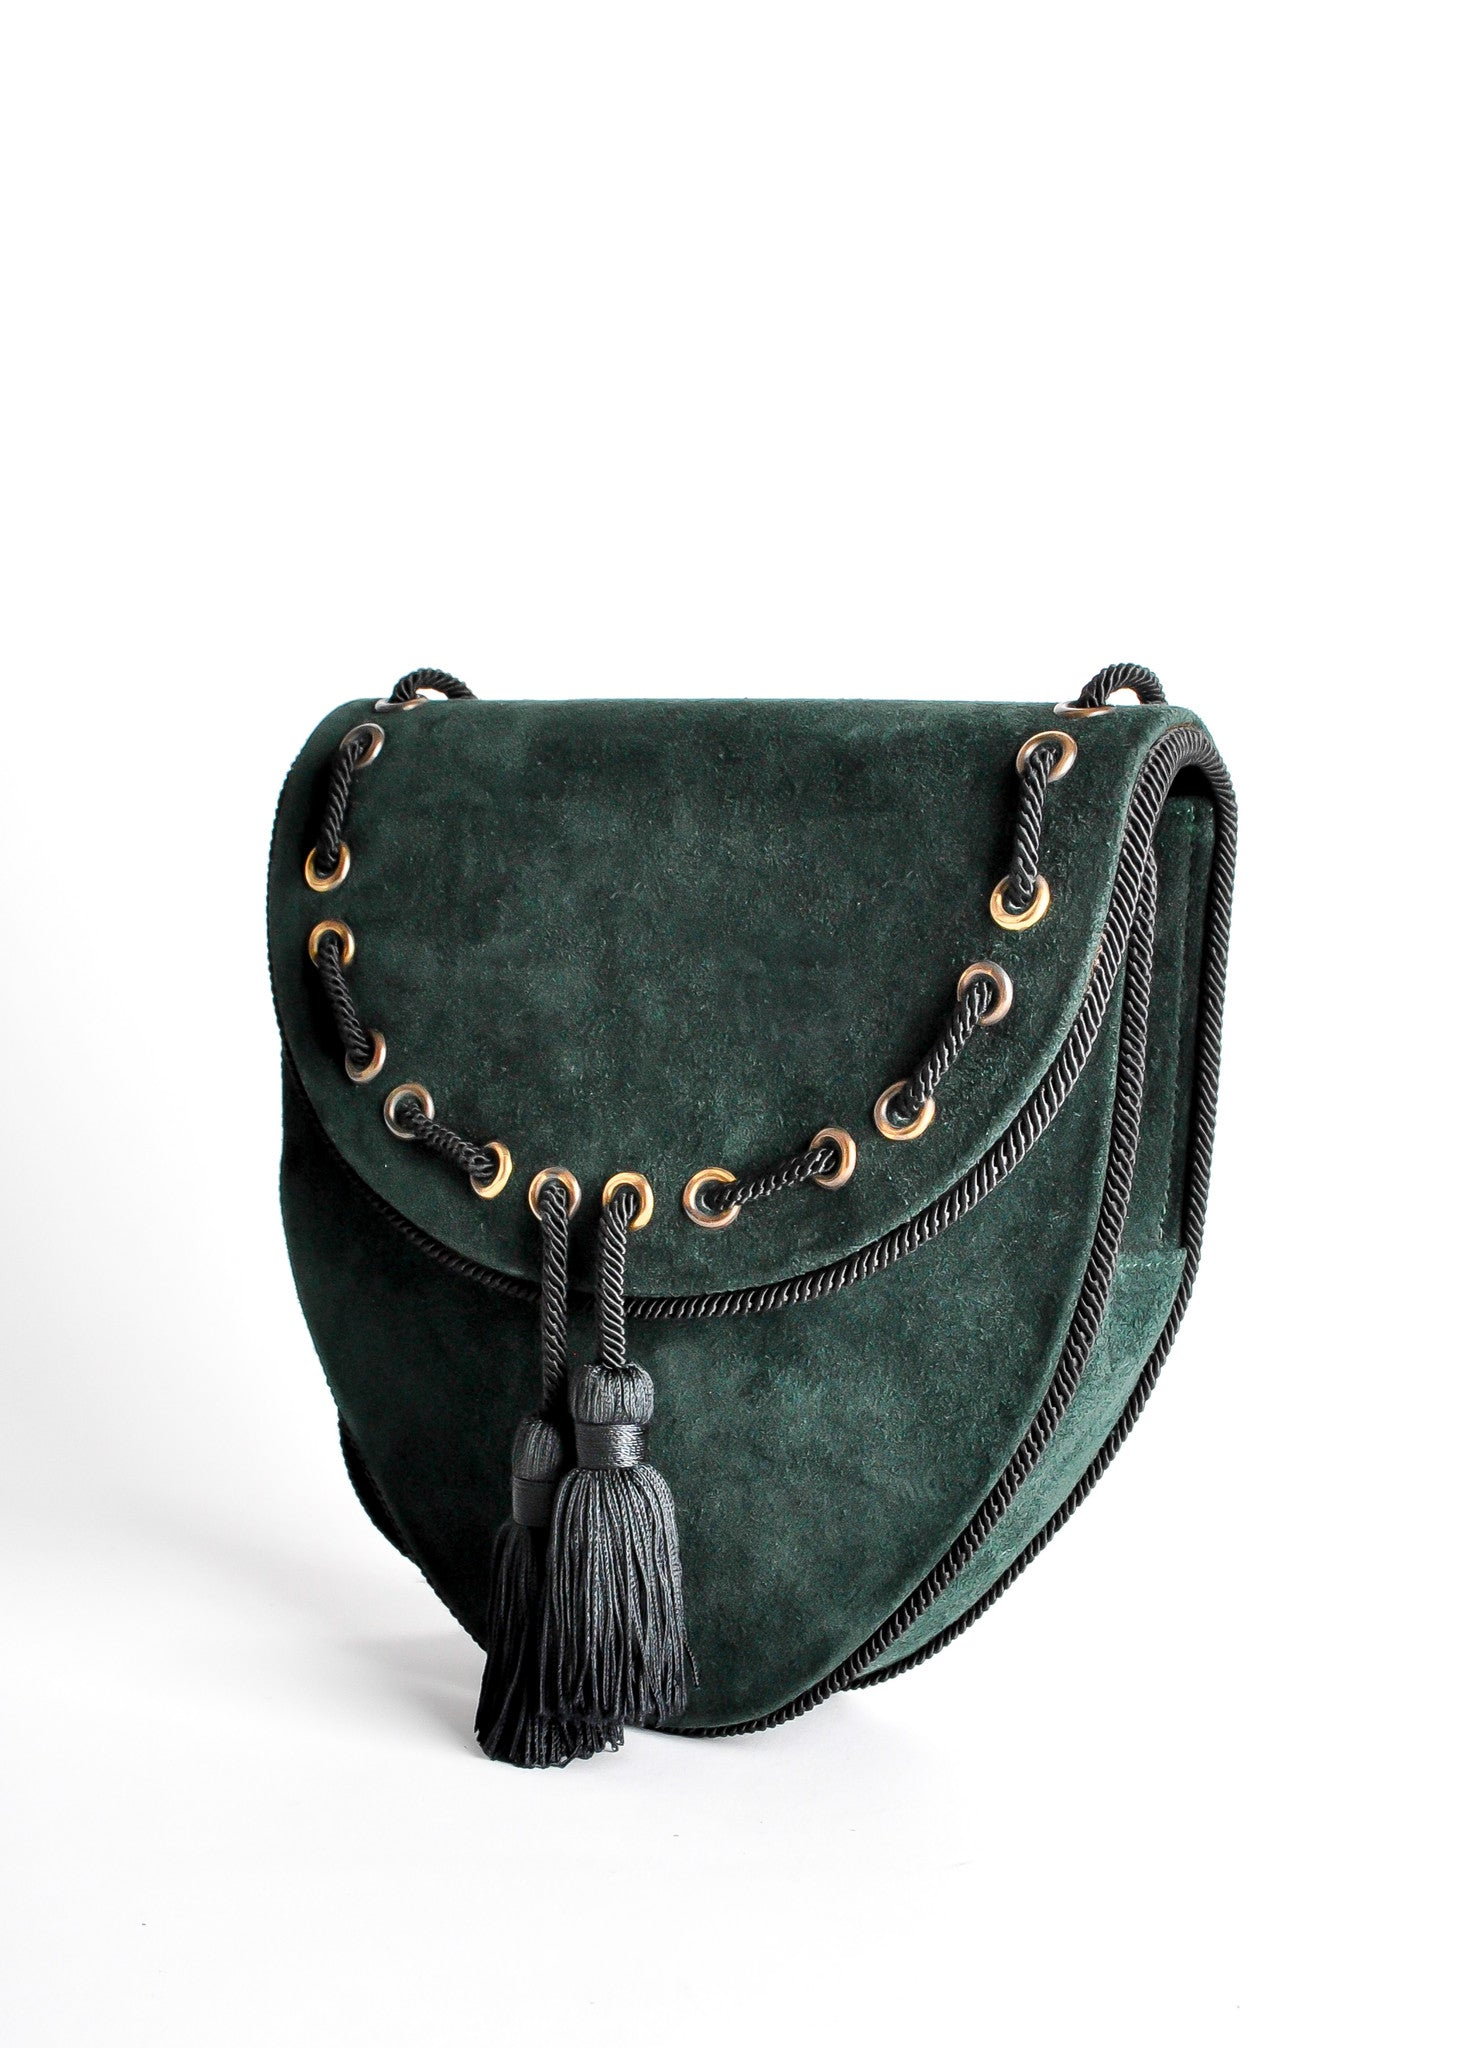 Yves Saint Laurent Vintage Green Suede Crossbody Bag